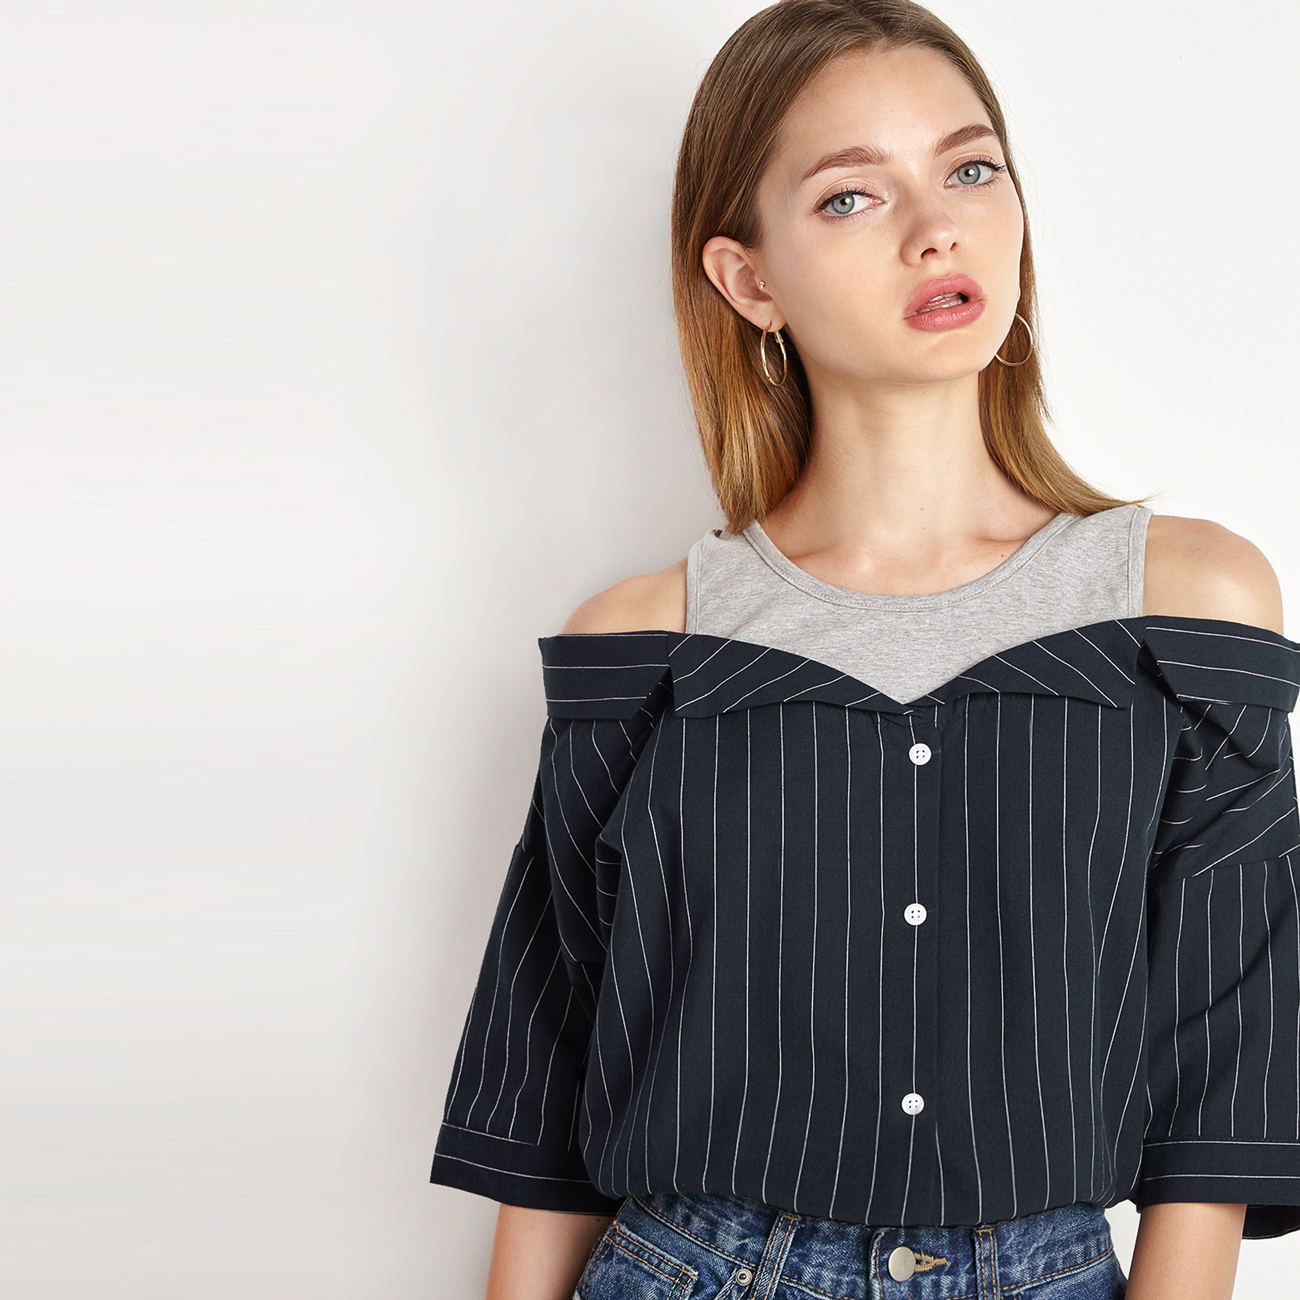 a7fa6cb729d473 IRISIE Apparel Stripe Off Shoulder Women Blouse Shirt Sweet Single Breasted  Slim Chic Blouse Preppy Casual Sexy Female Shirt-in Blouses & Shirts from  ...